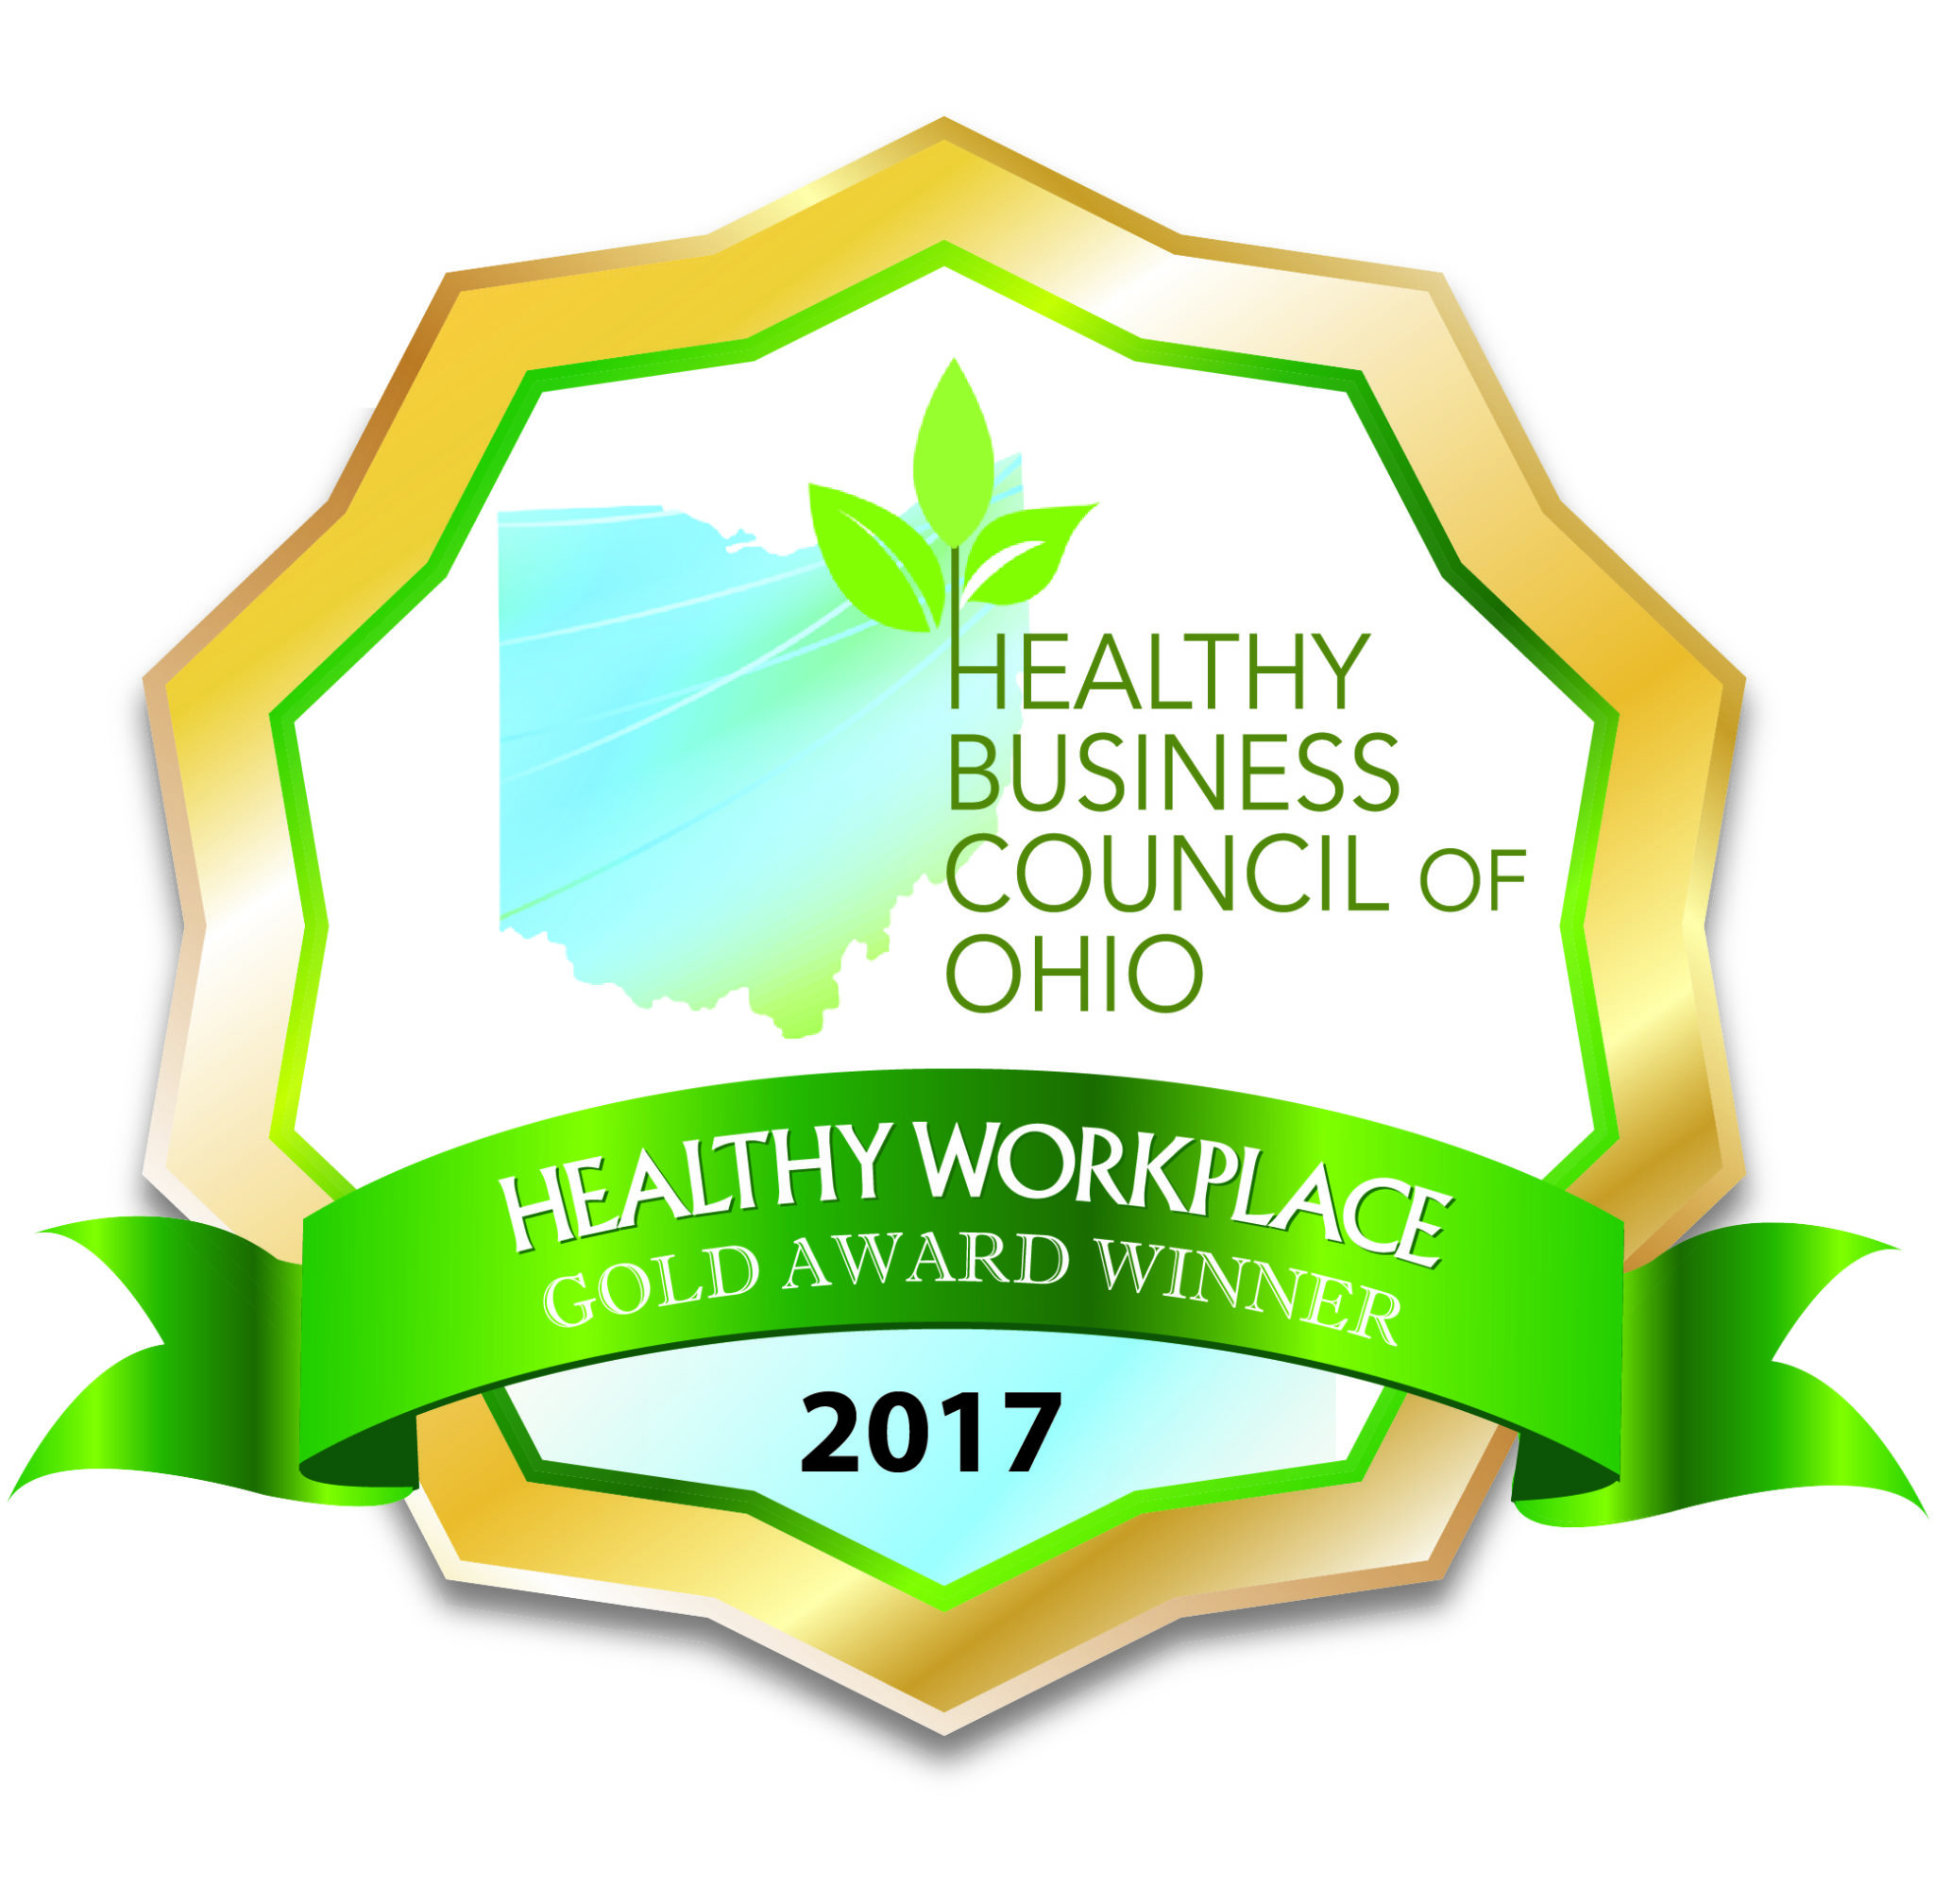 healthiest business council of ohio